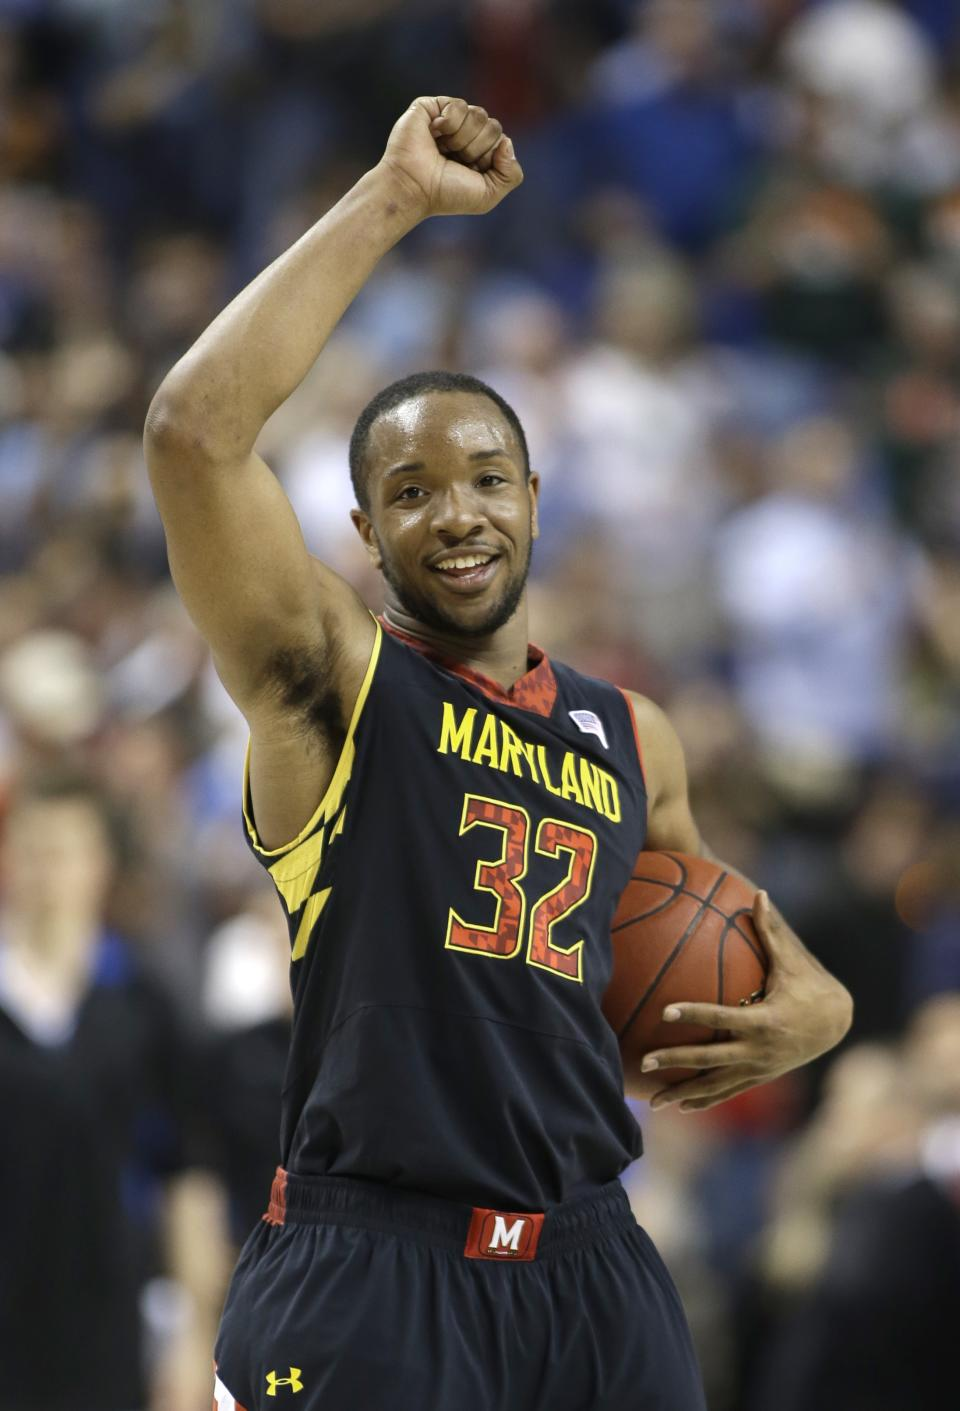 Maryland's Dez Wells smiles in the final seconds of an NCAA college basketball game against Duke at the Atlantic Coast Conference men's tournament in Greensboro, N.C., Friday, March 15, 2013. Maryland won 83-74. (AP Photo/Bob Leverone)